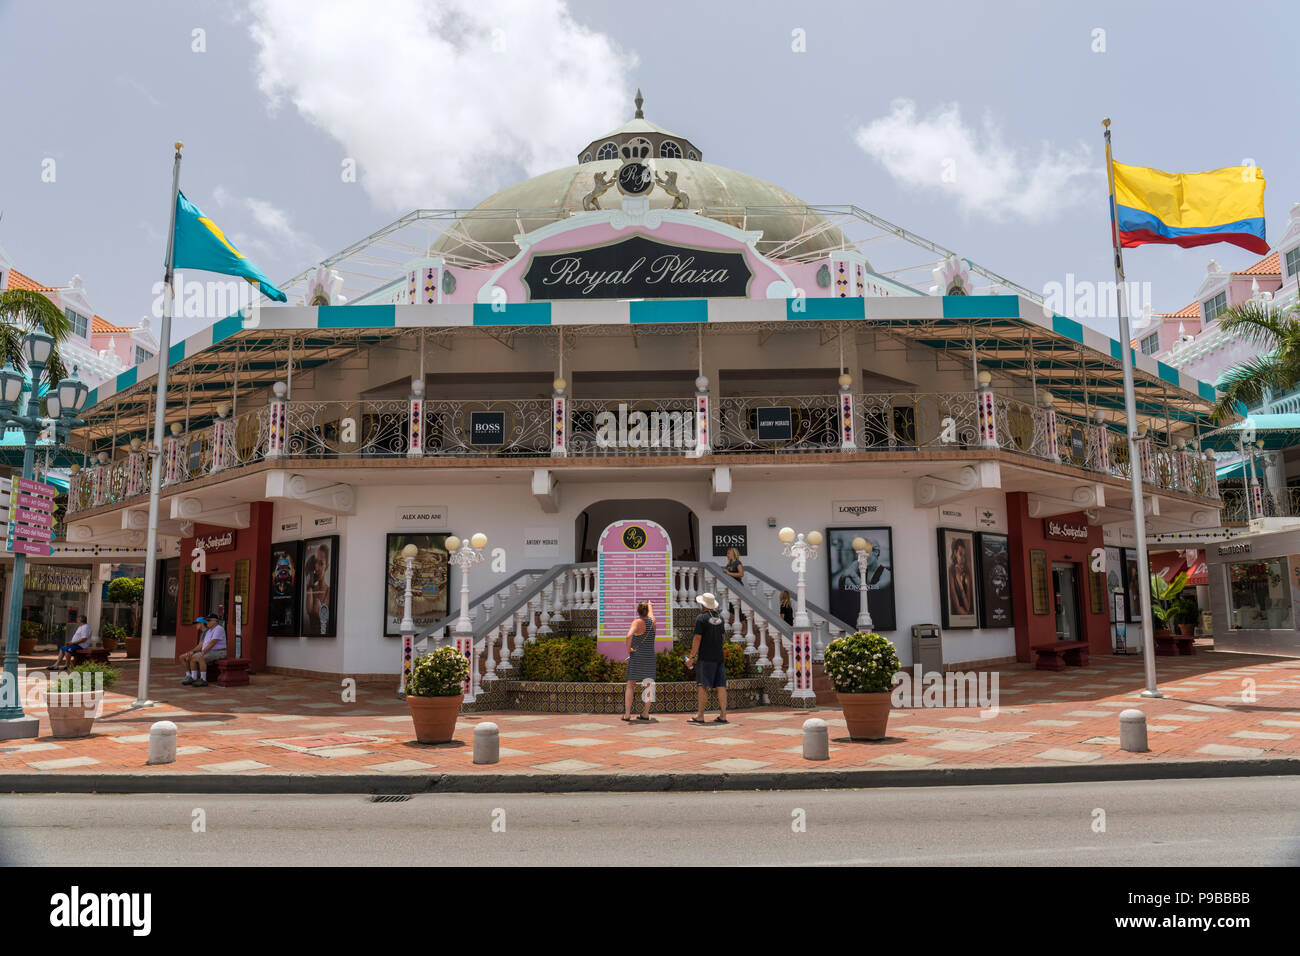 Royal Plaza shopping mall, Oranjestad, Aruba, Dutch Caribbean Stock